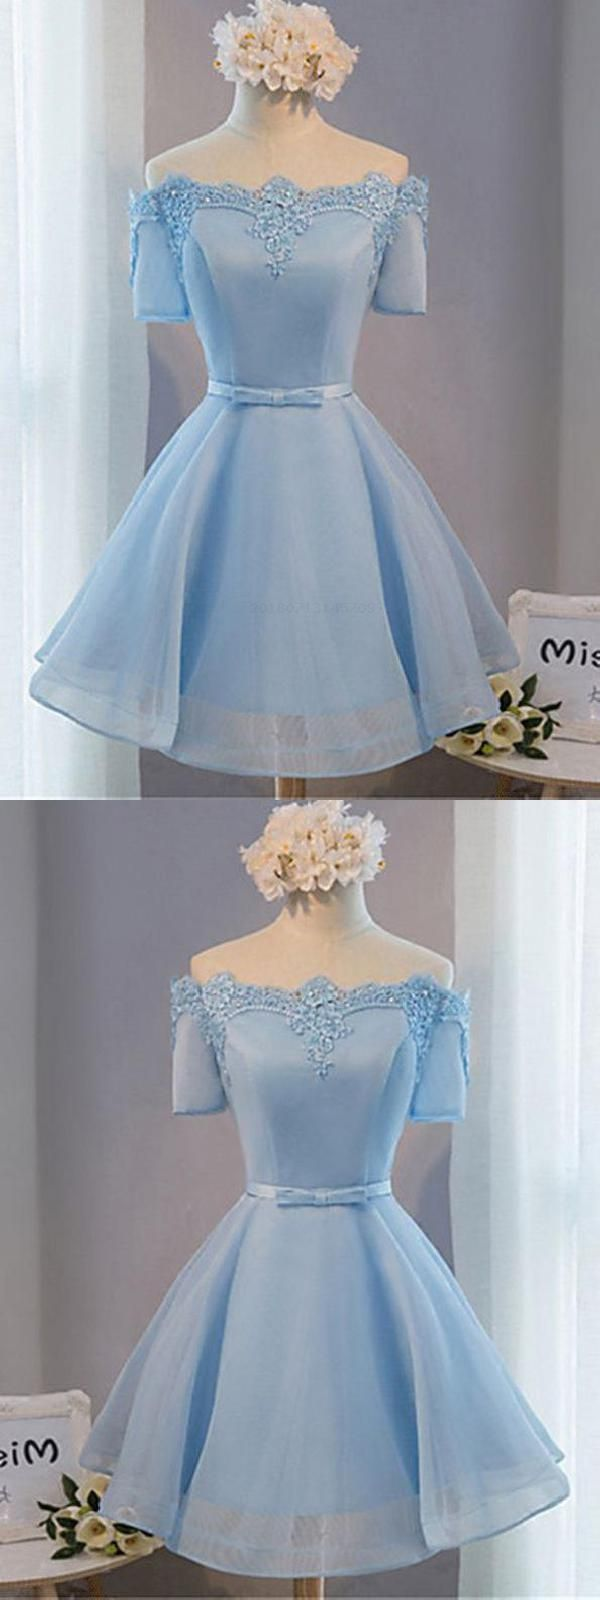 Short sleeve homecoming dresses blue homecoming dresses homecoming